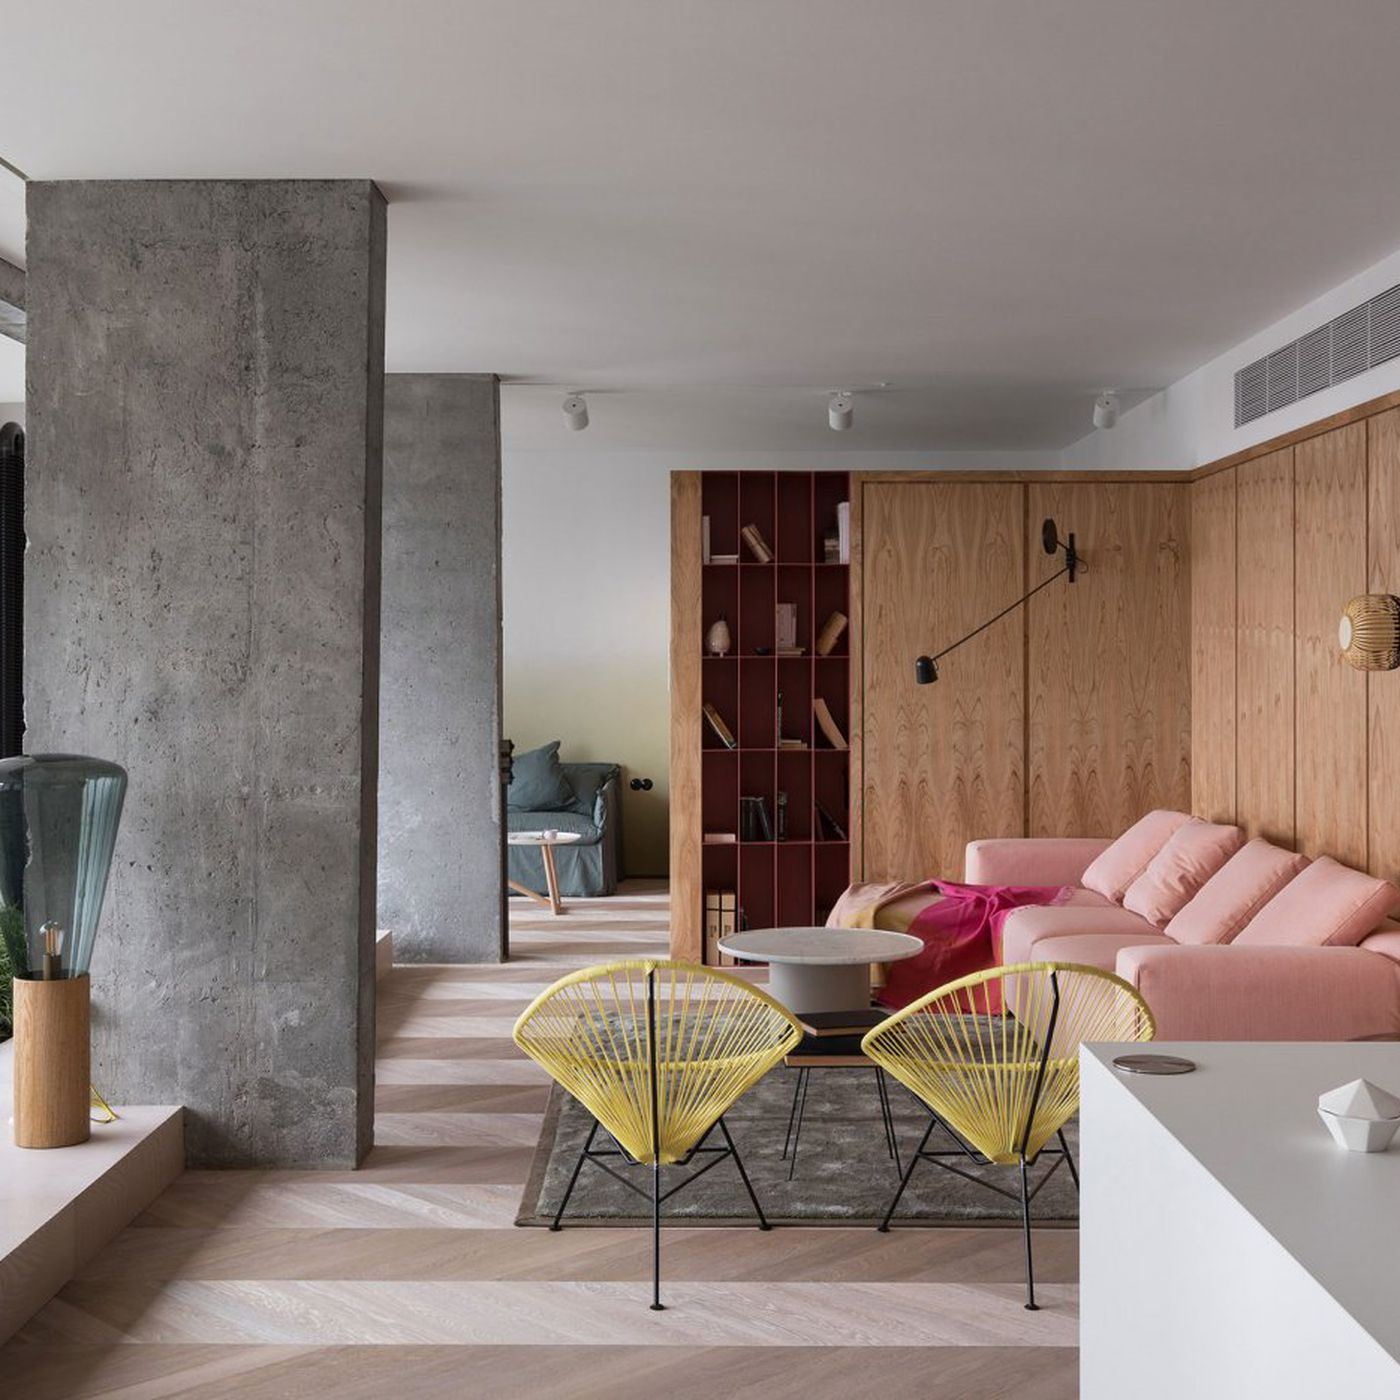 Modern apartment renovation uses concrete and pink to subtle effect